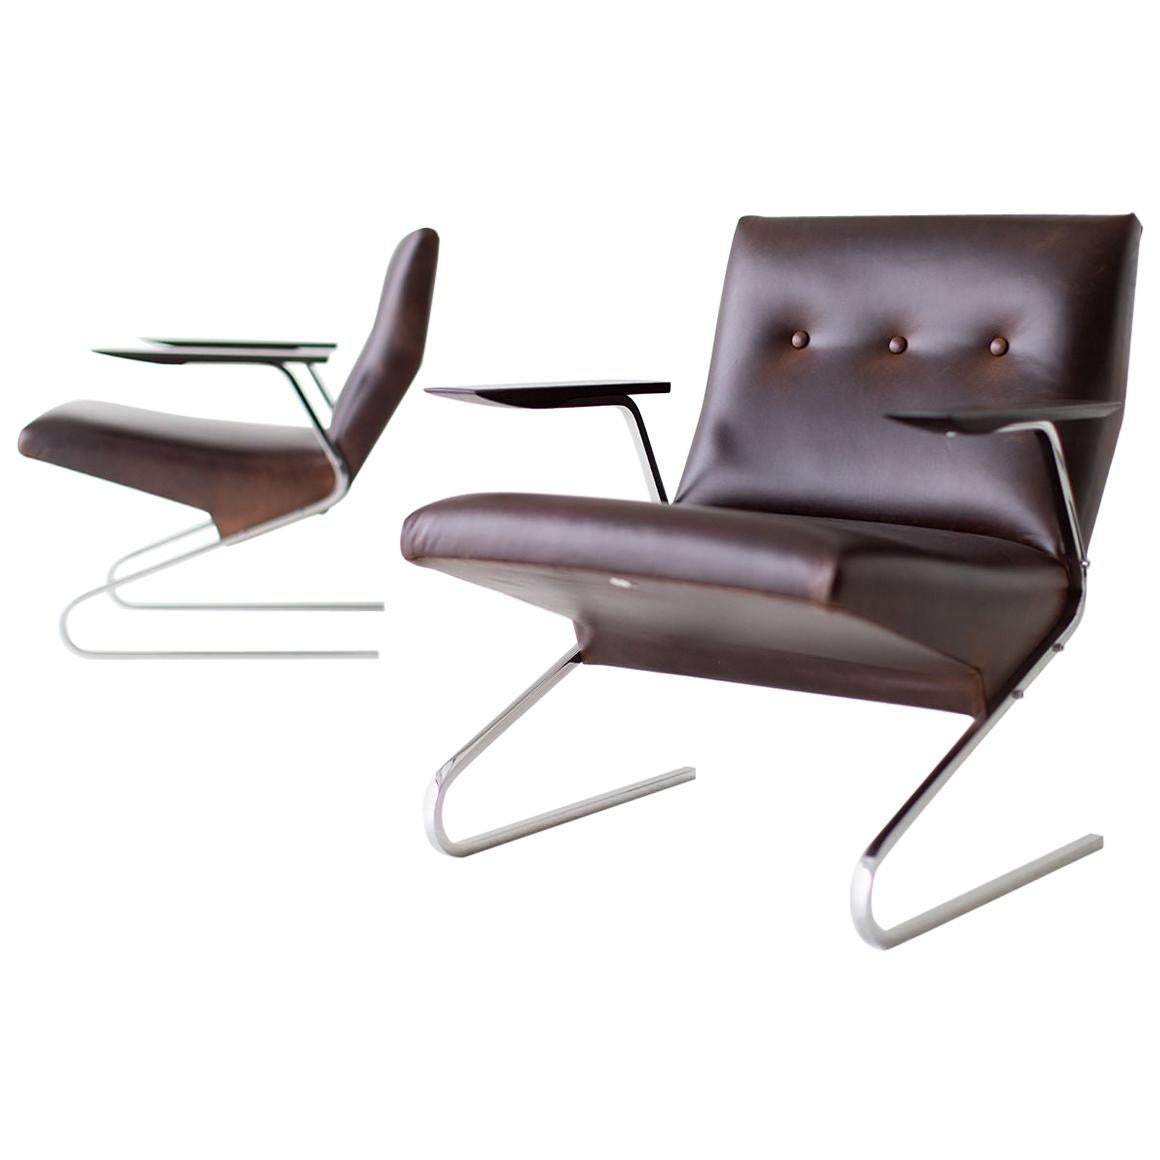 Georges Van Rijck Leather Lounge Chairs for Beaufort